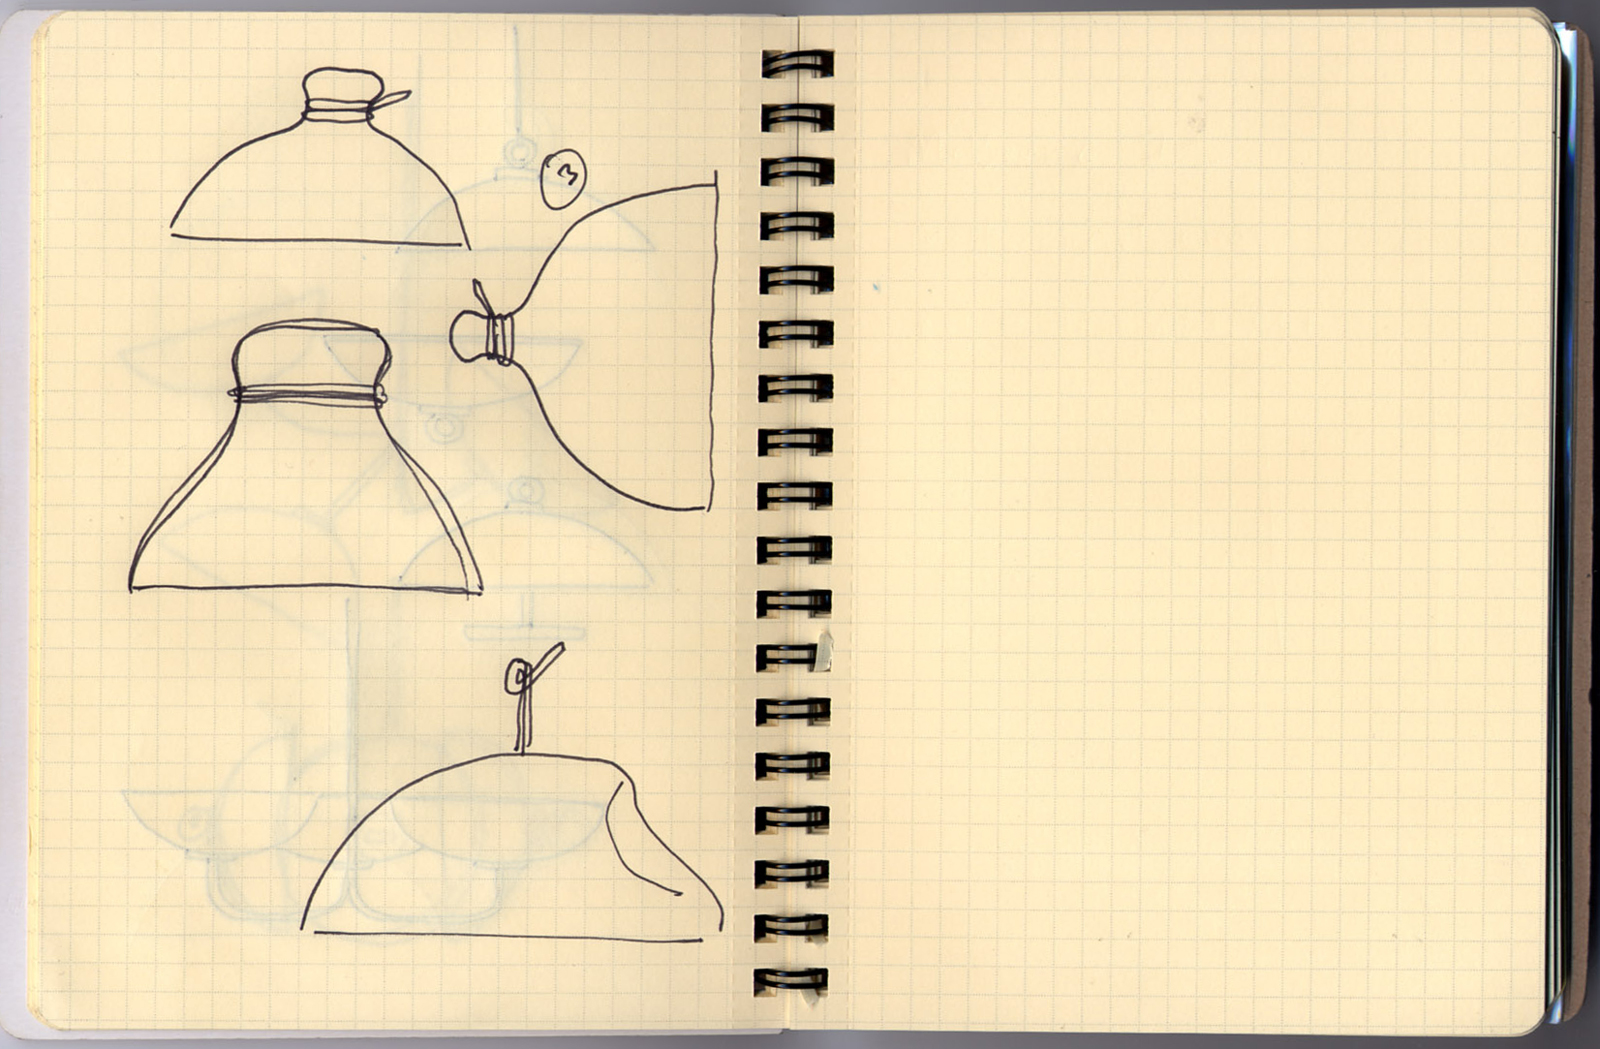 Sketch by designer Jason Miller for his GlassLab design session at the Museum, June 5-6, 2012